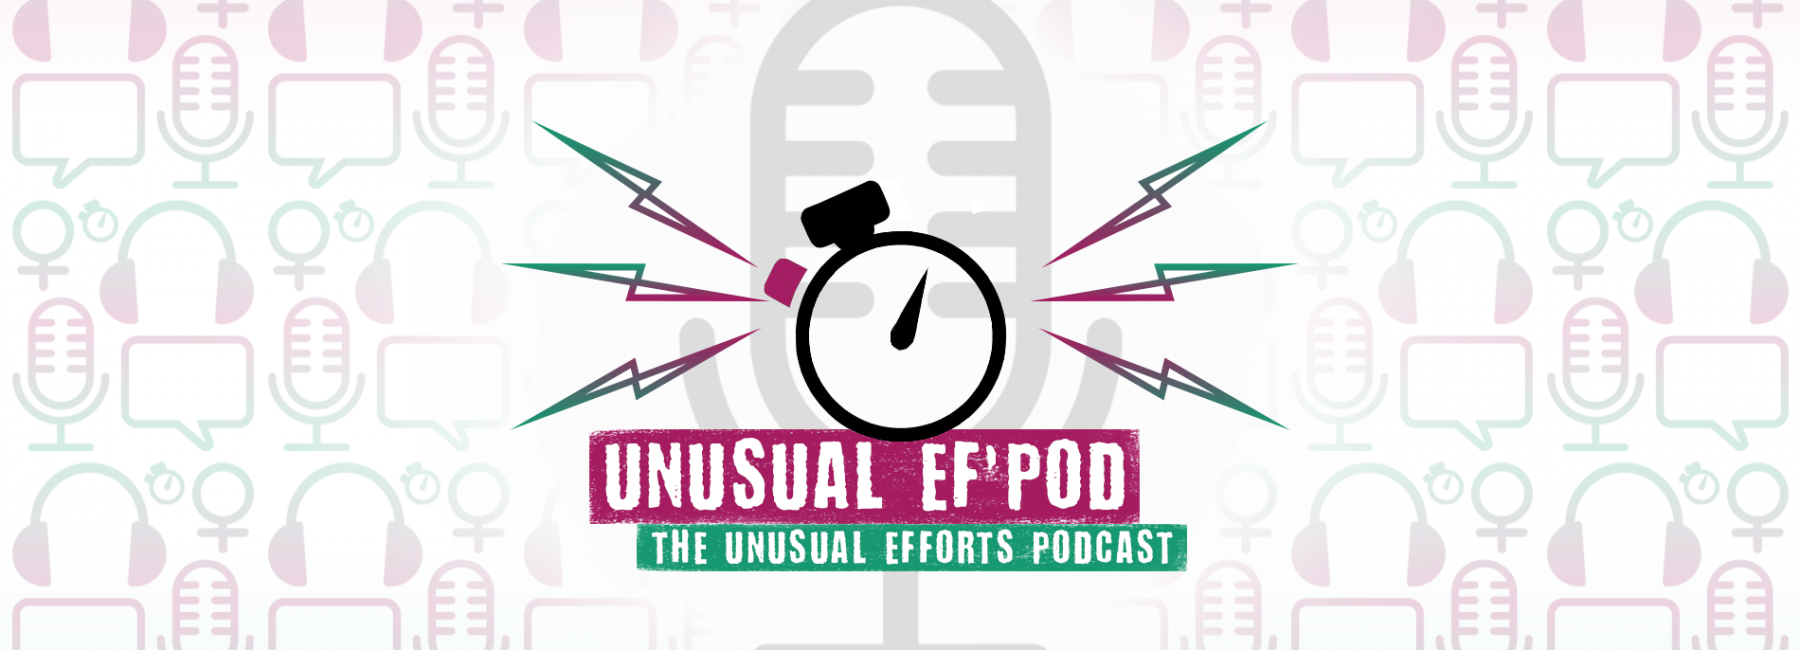 Unusual Ef'pod episode 12 – Let the men bring US coffee